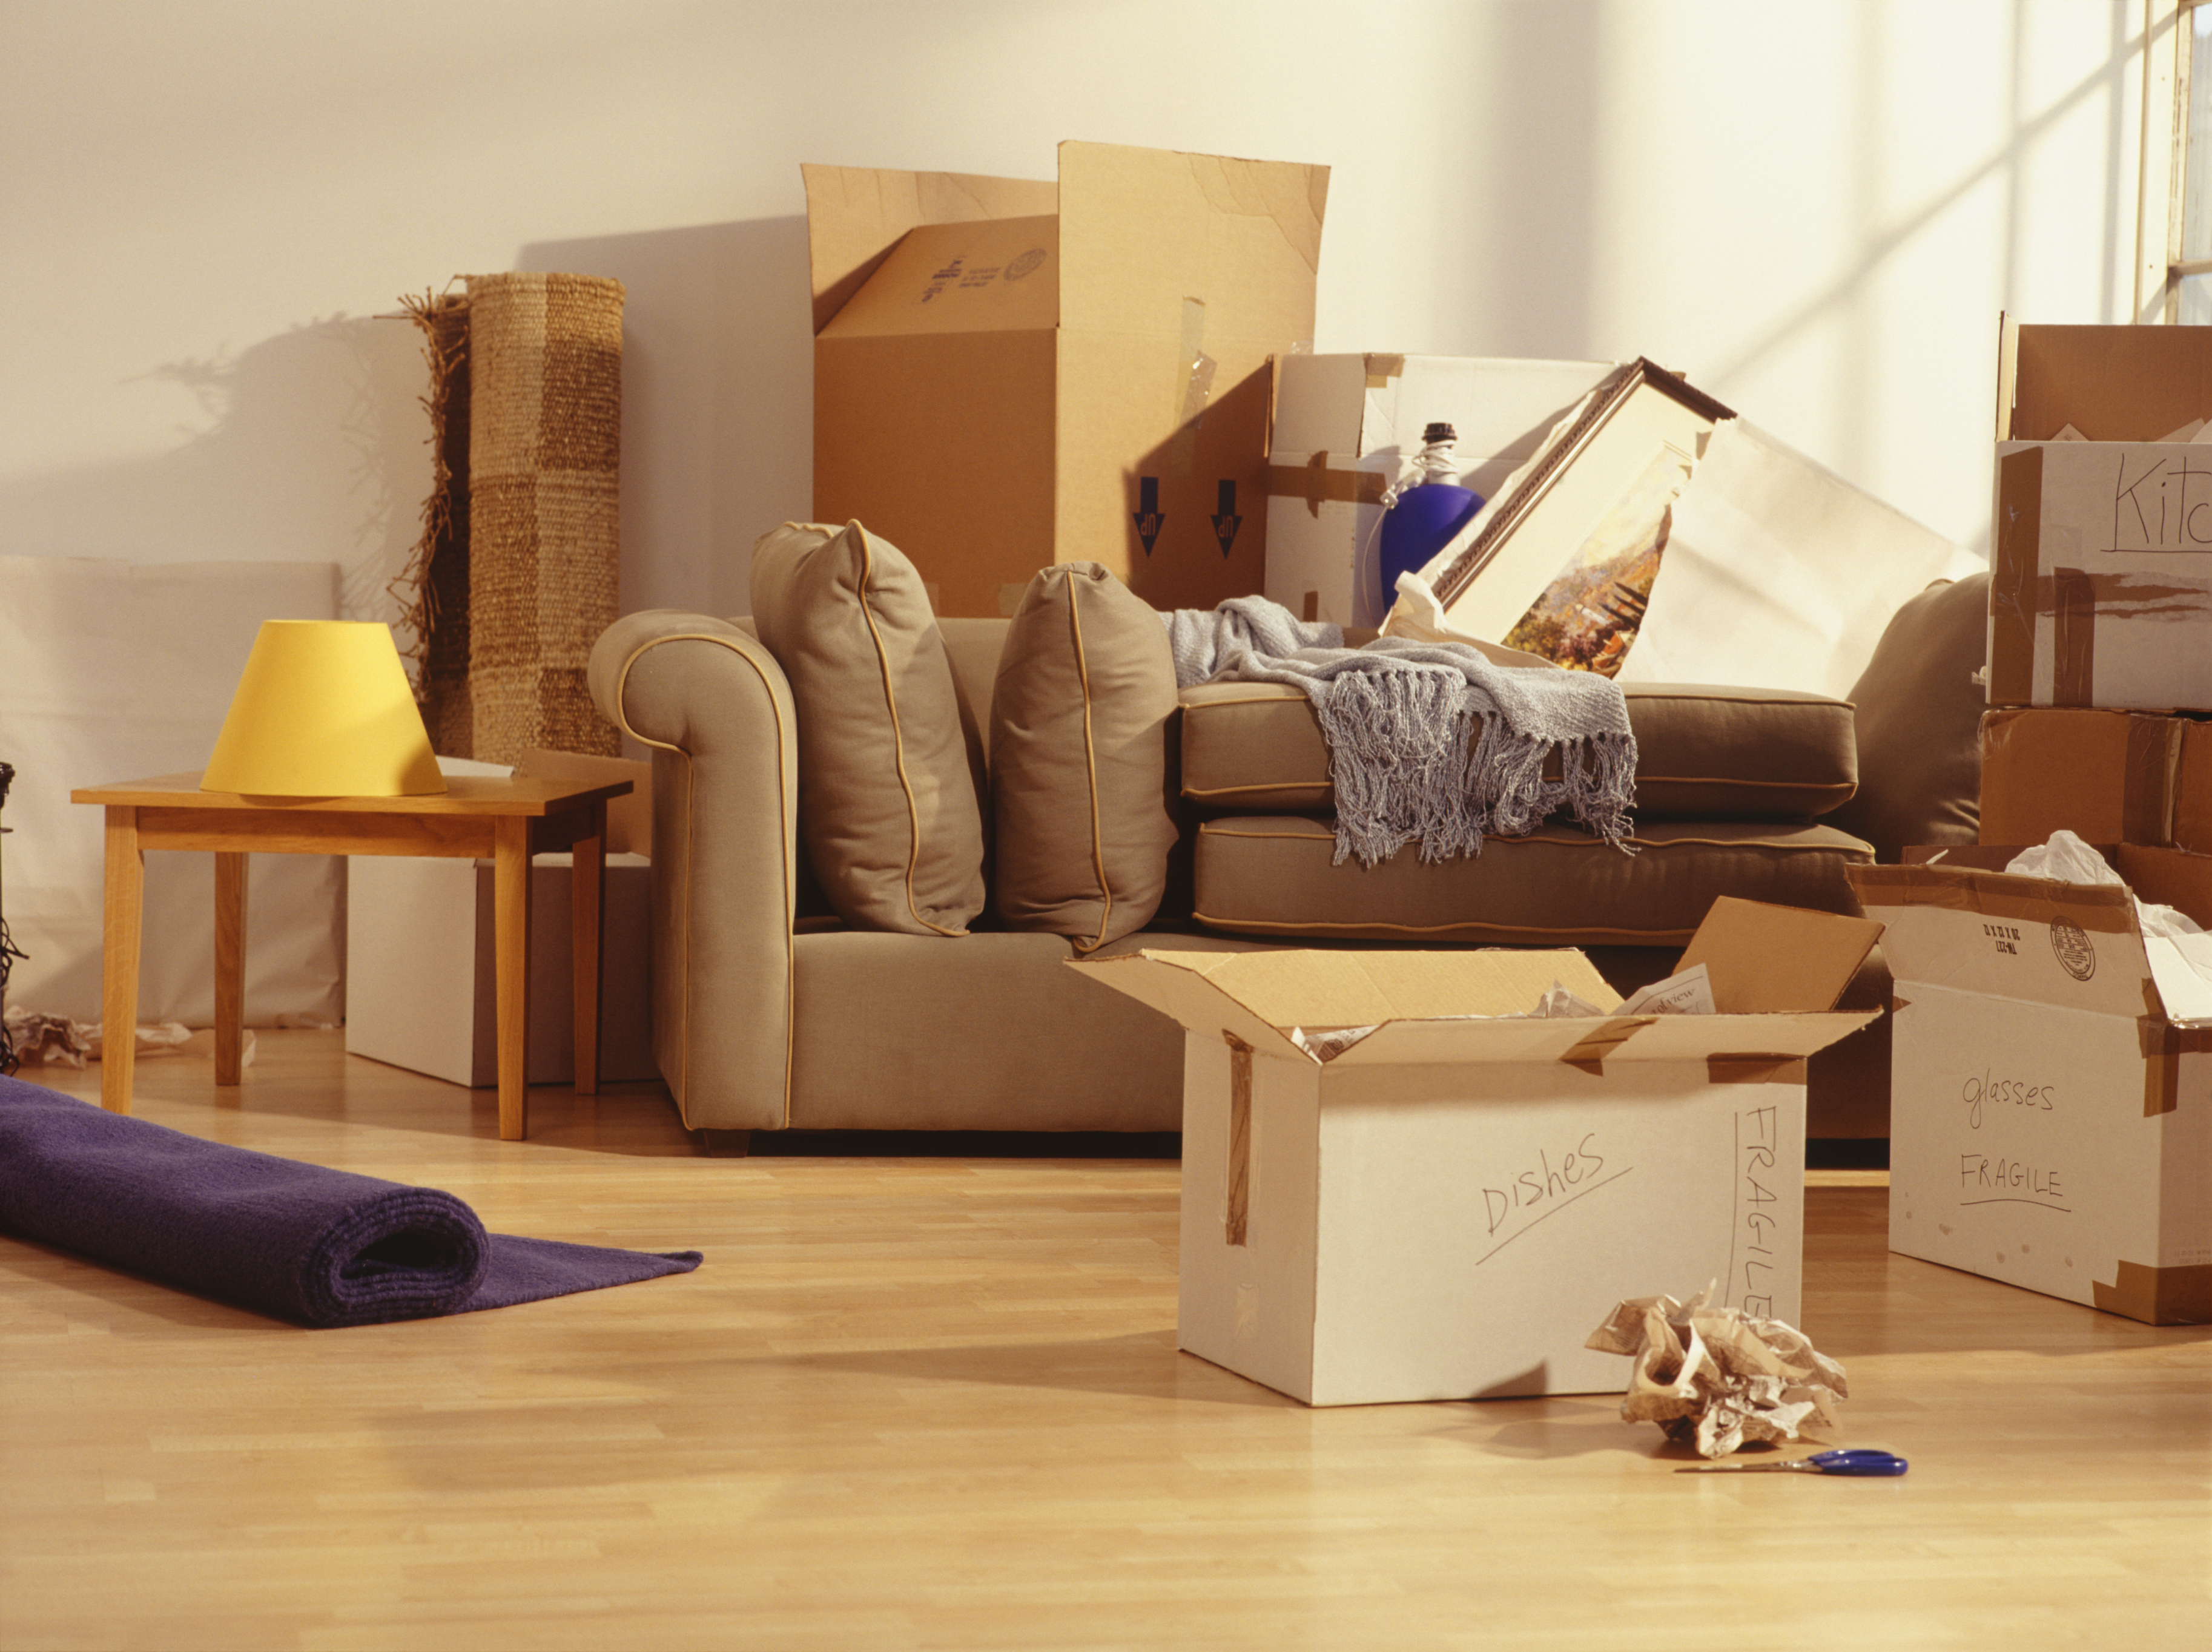 7 Things To Do Before Moving Out